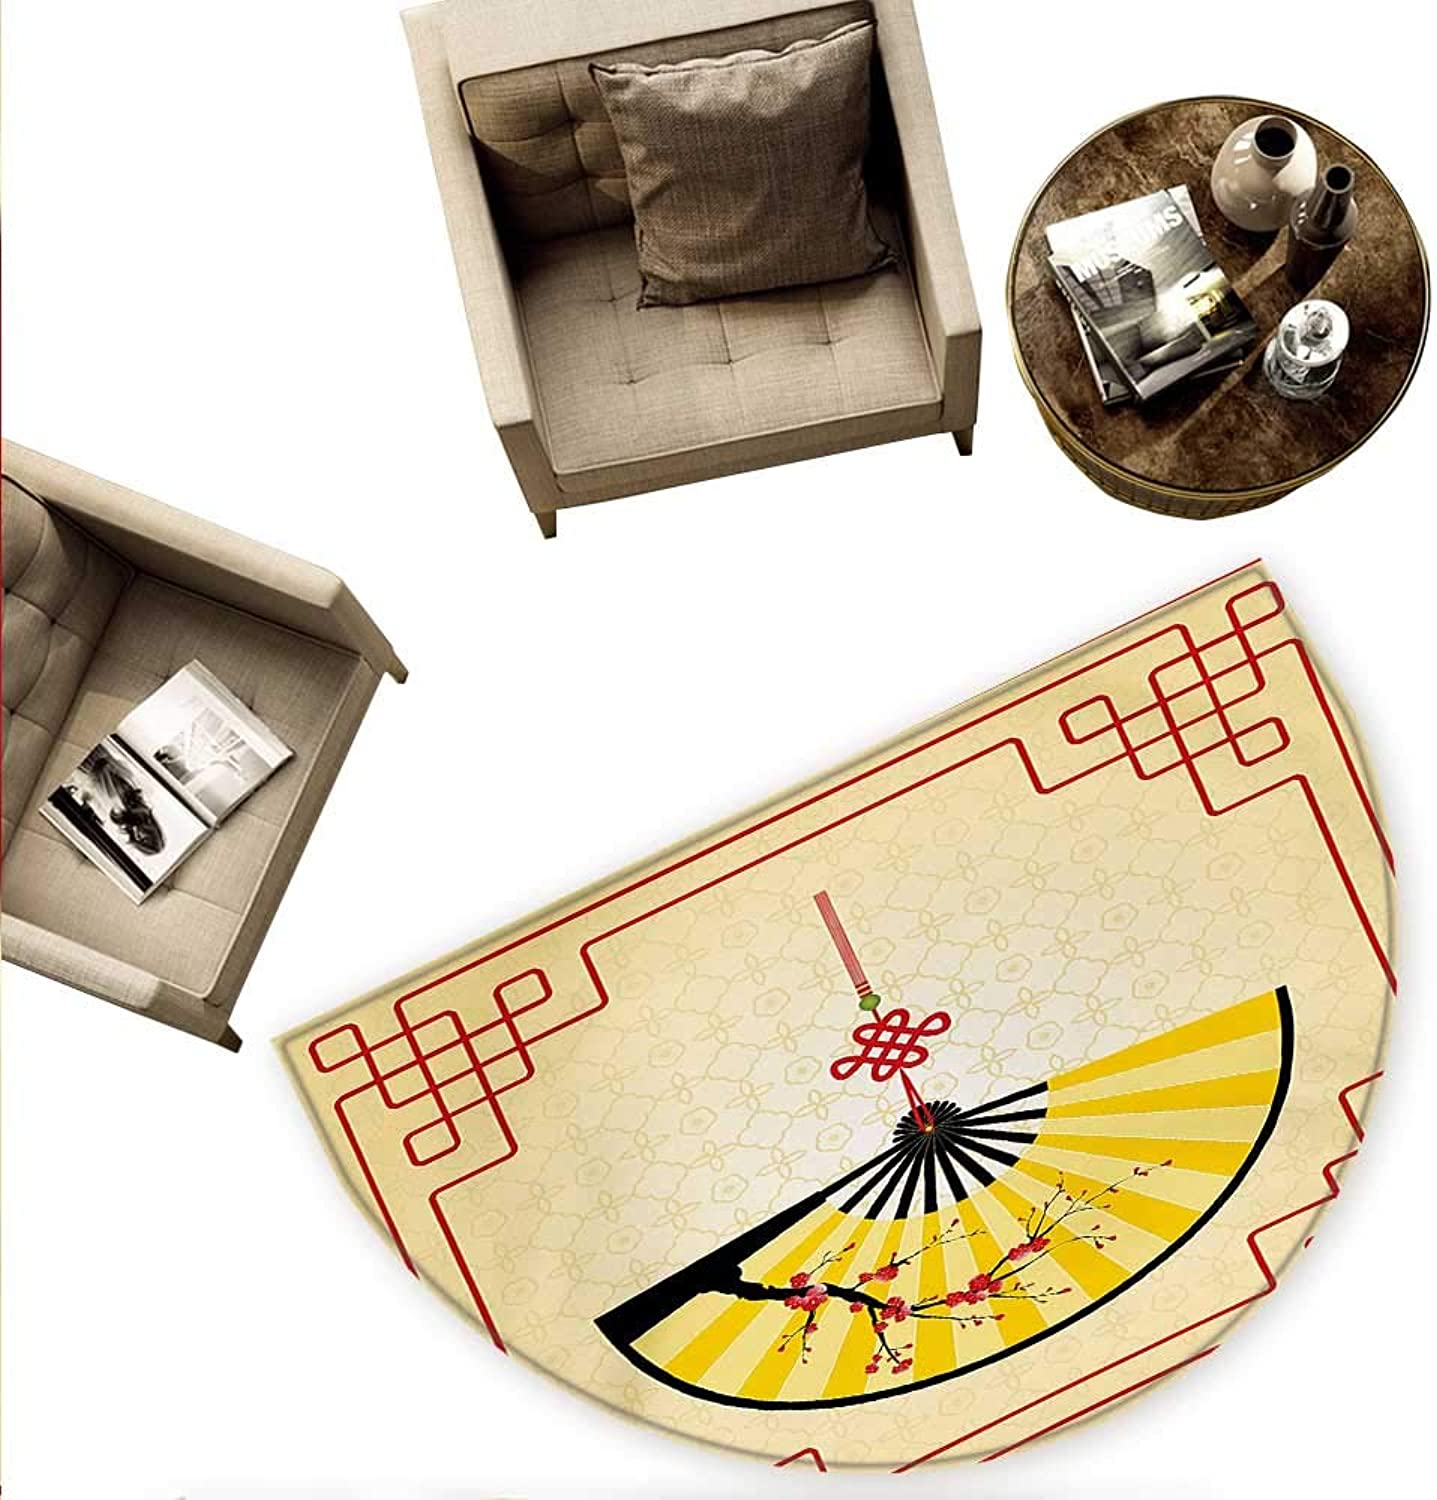 Asian Semicircle Doormat Japanese Culture Hand Fan with Cherry Blossom and Traditional Lines Design Halfmoon doormats H 70.8  xD 106.3  Sand Brown Yellow Red